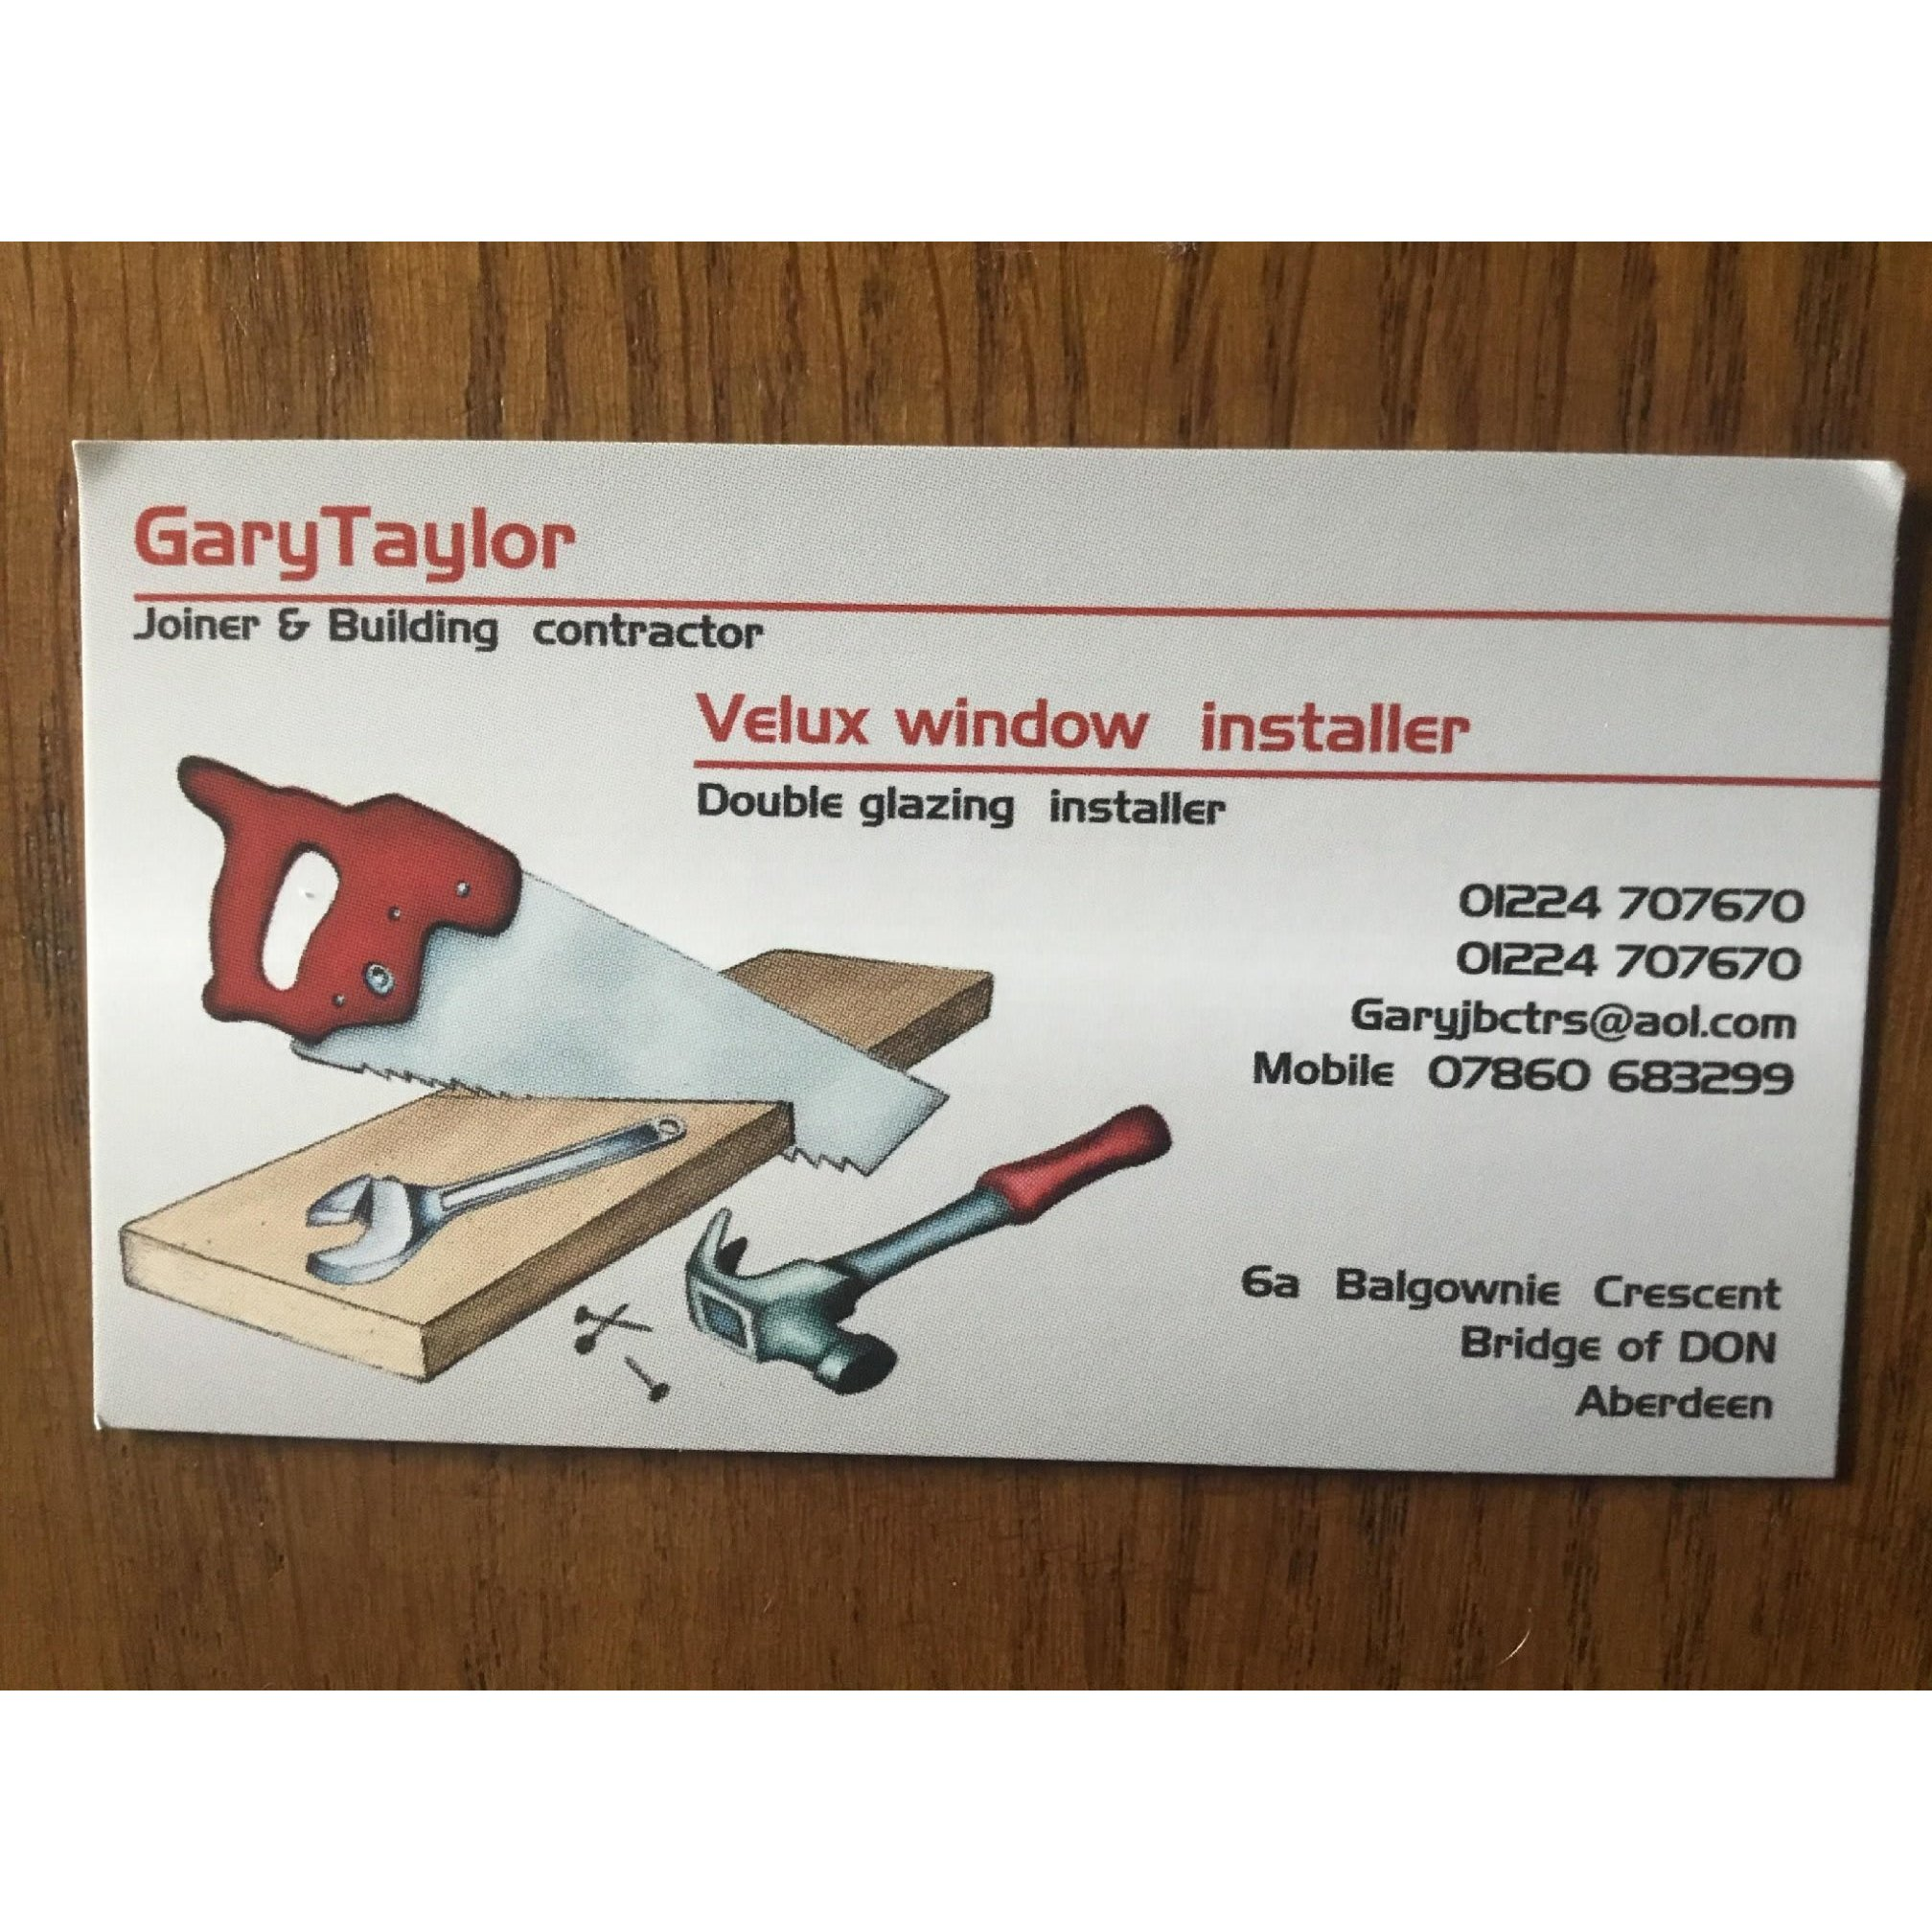 Gary Taylor Joiner & Building Contractor